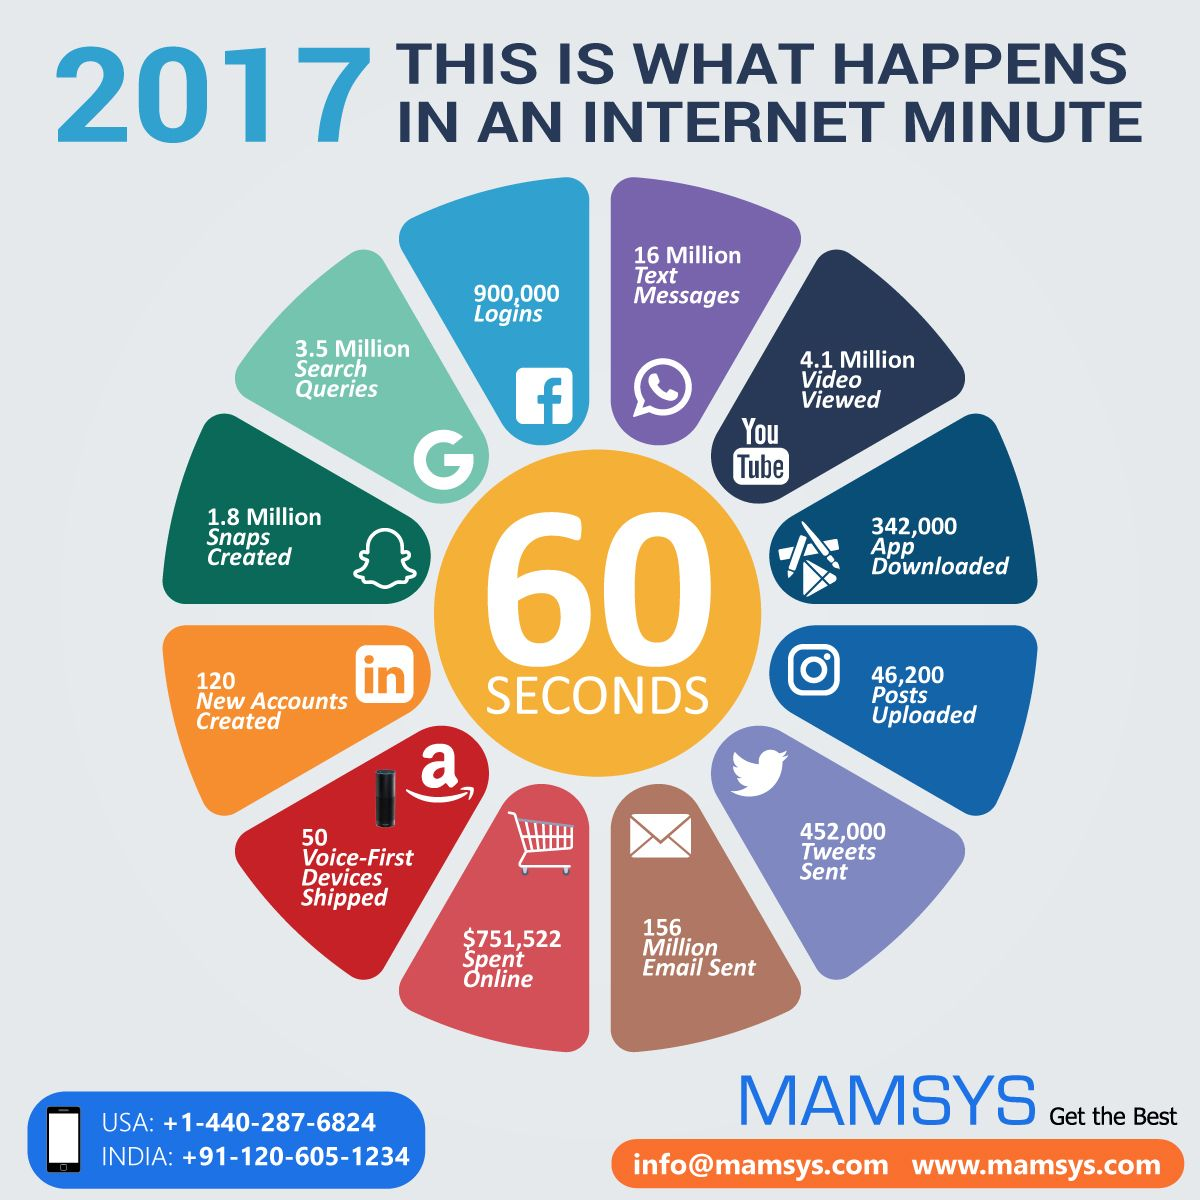 Our '60 seconds' infographic visualizes what occurs in only one